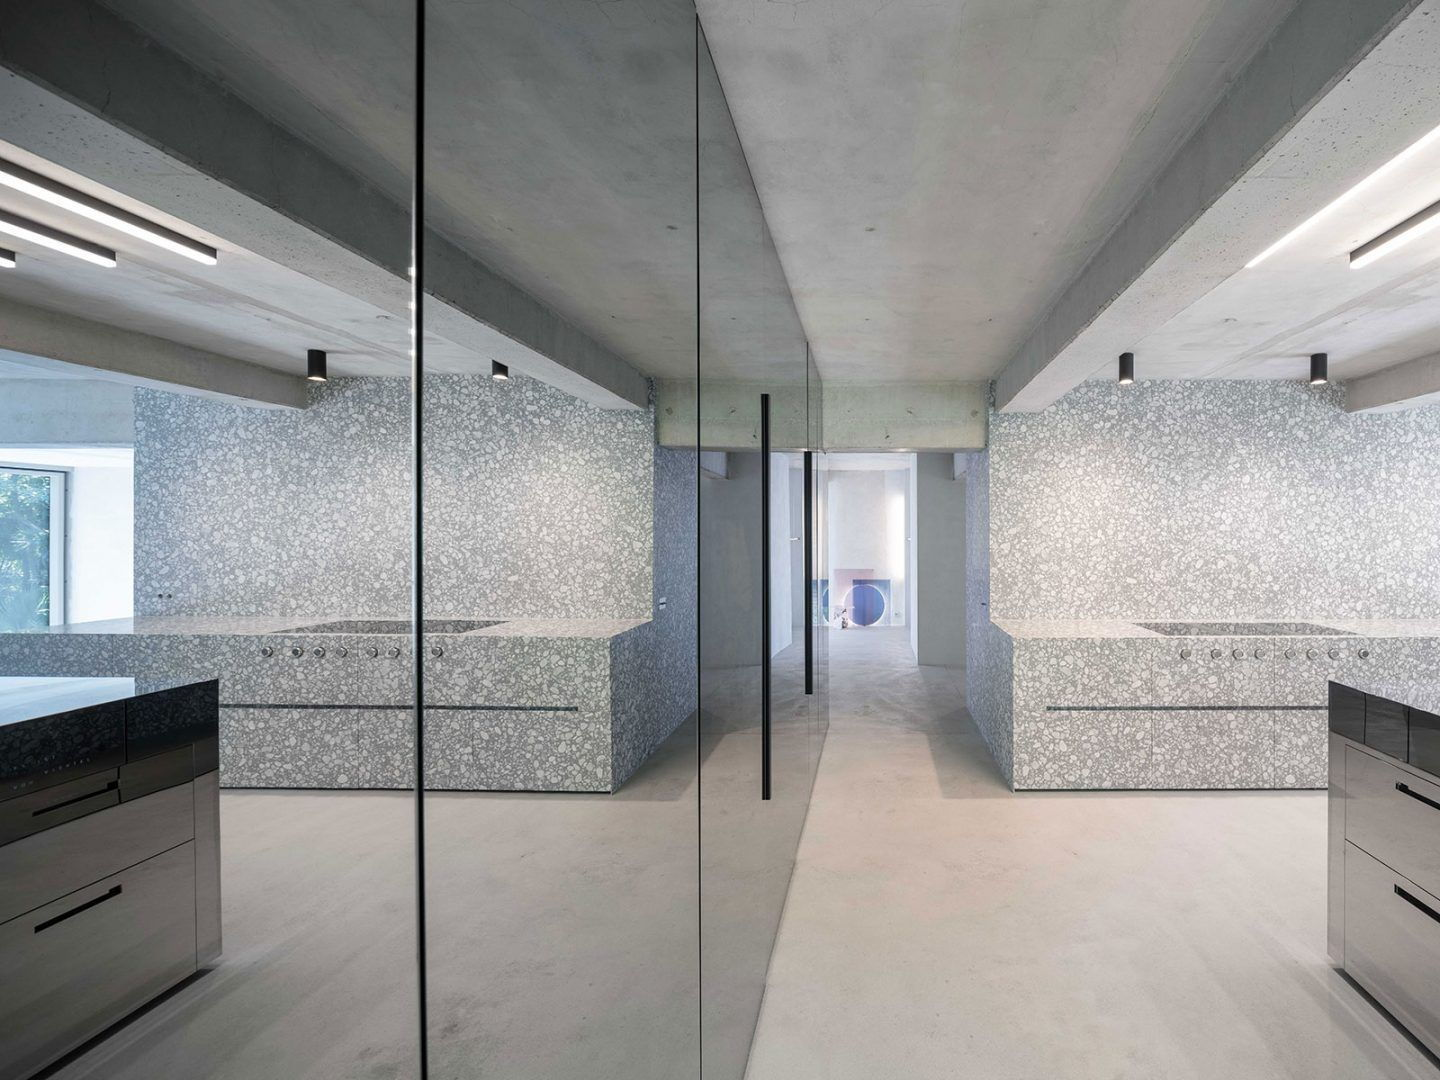 The interiors of Casa Morgana are filled with mirrors and speckled terrazzo surfaces.